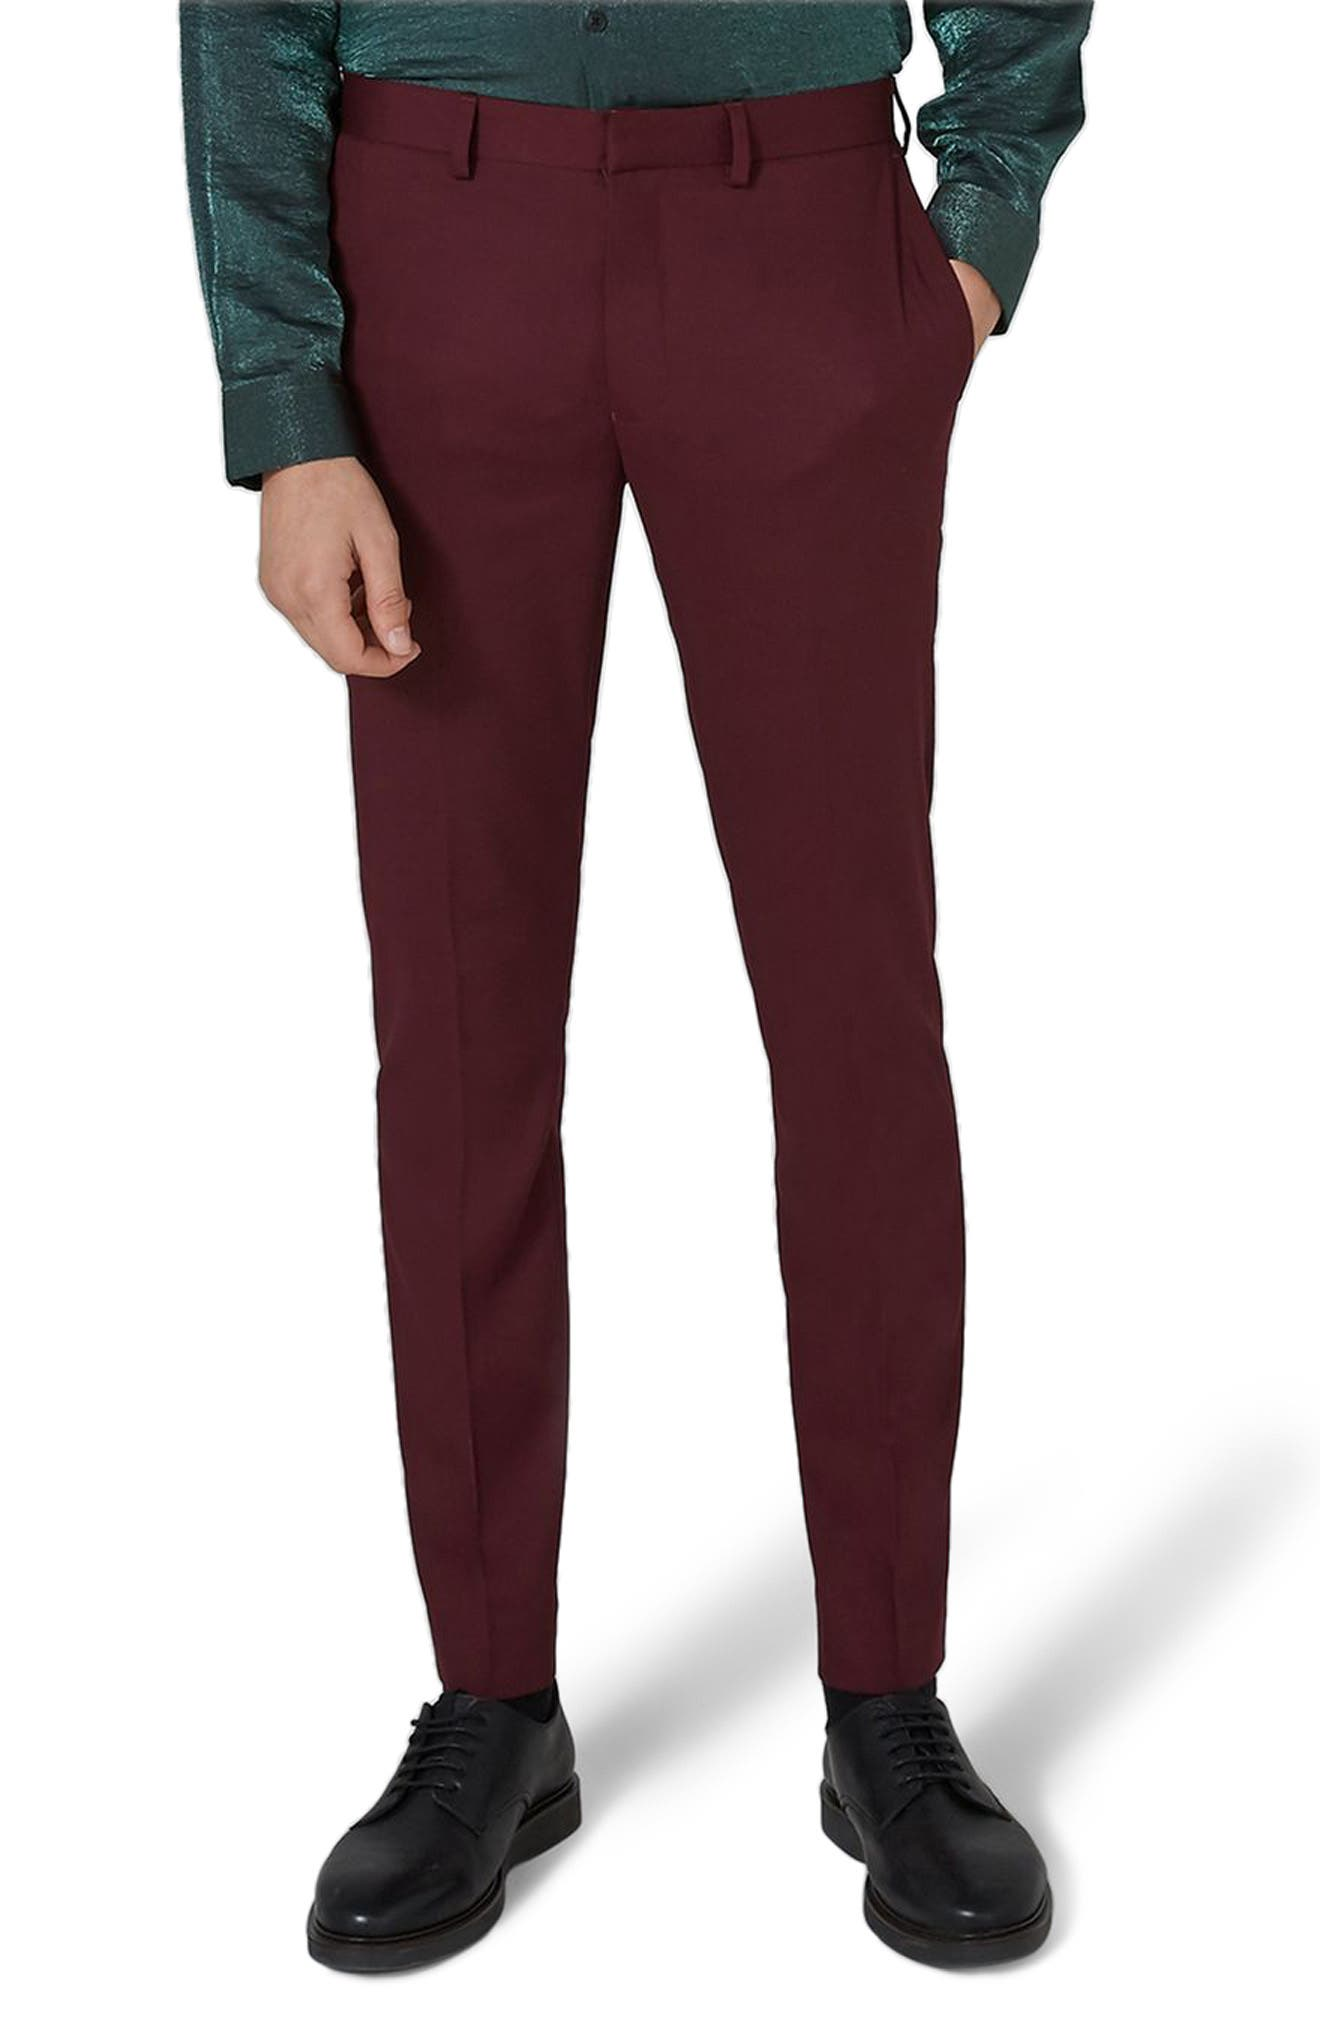 Skinny Fit Burgundy Tuxedo Trousers,                             Main thumbnail 1, color,                             Burgundy